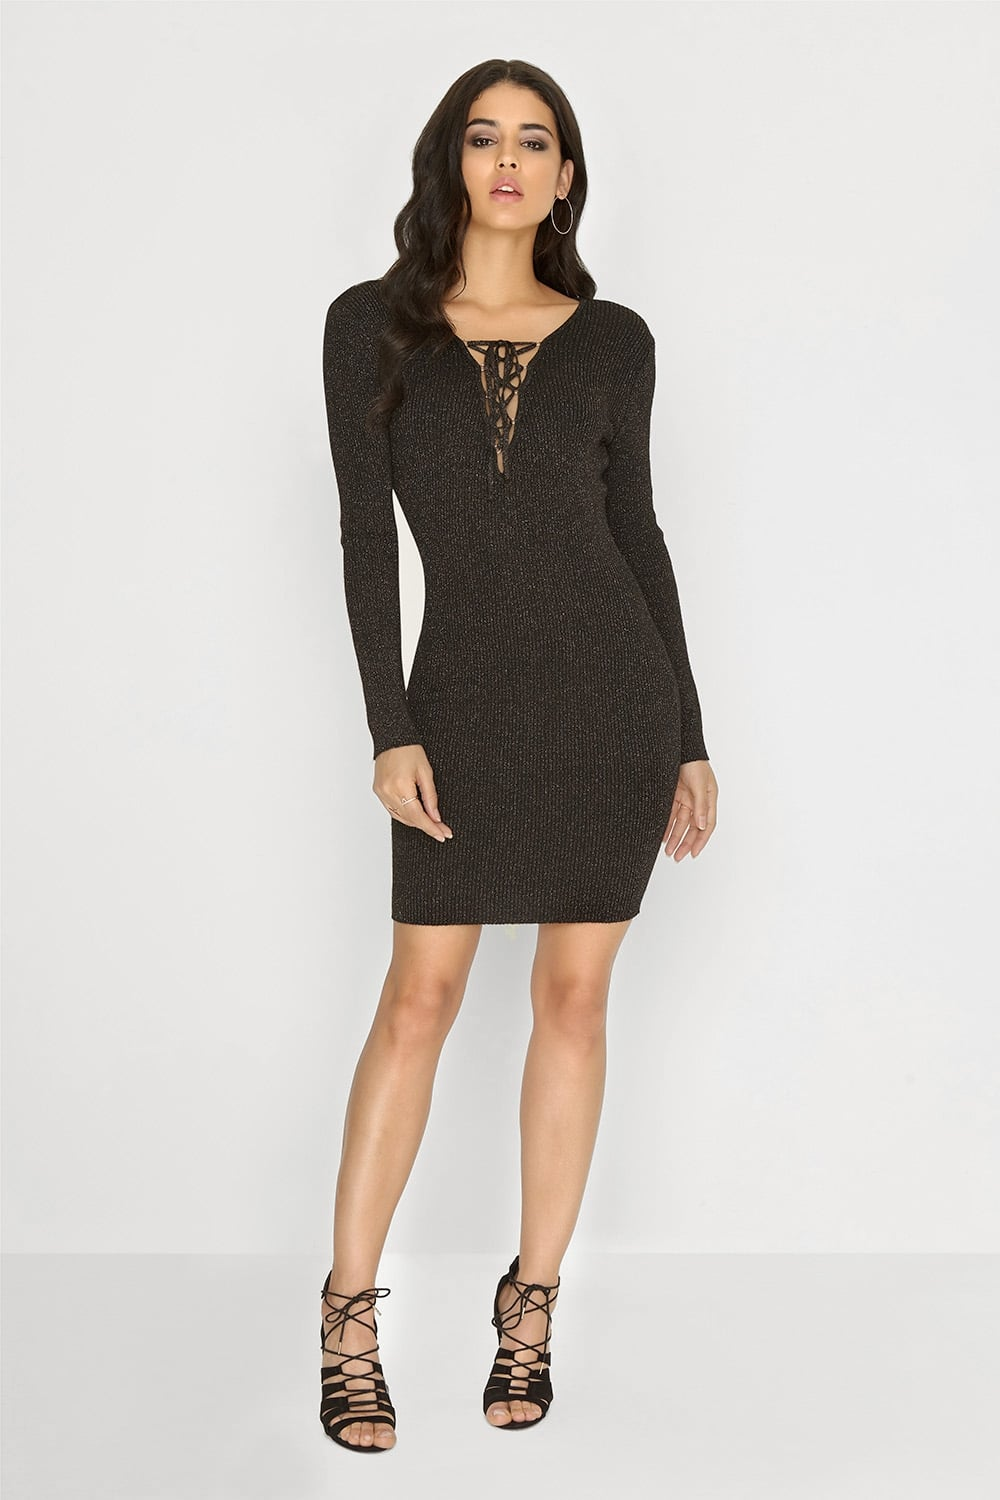 24347fb9ca5a Outlet Girls On Film Black Knitted Lurex Dress - Outlet Girls On Film from  Little Mistress UK